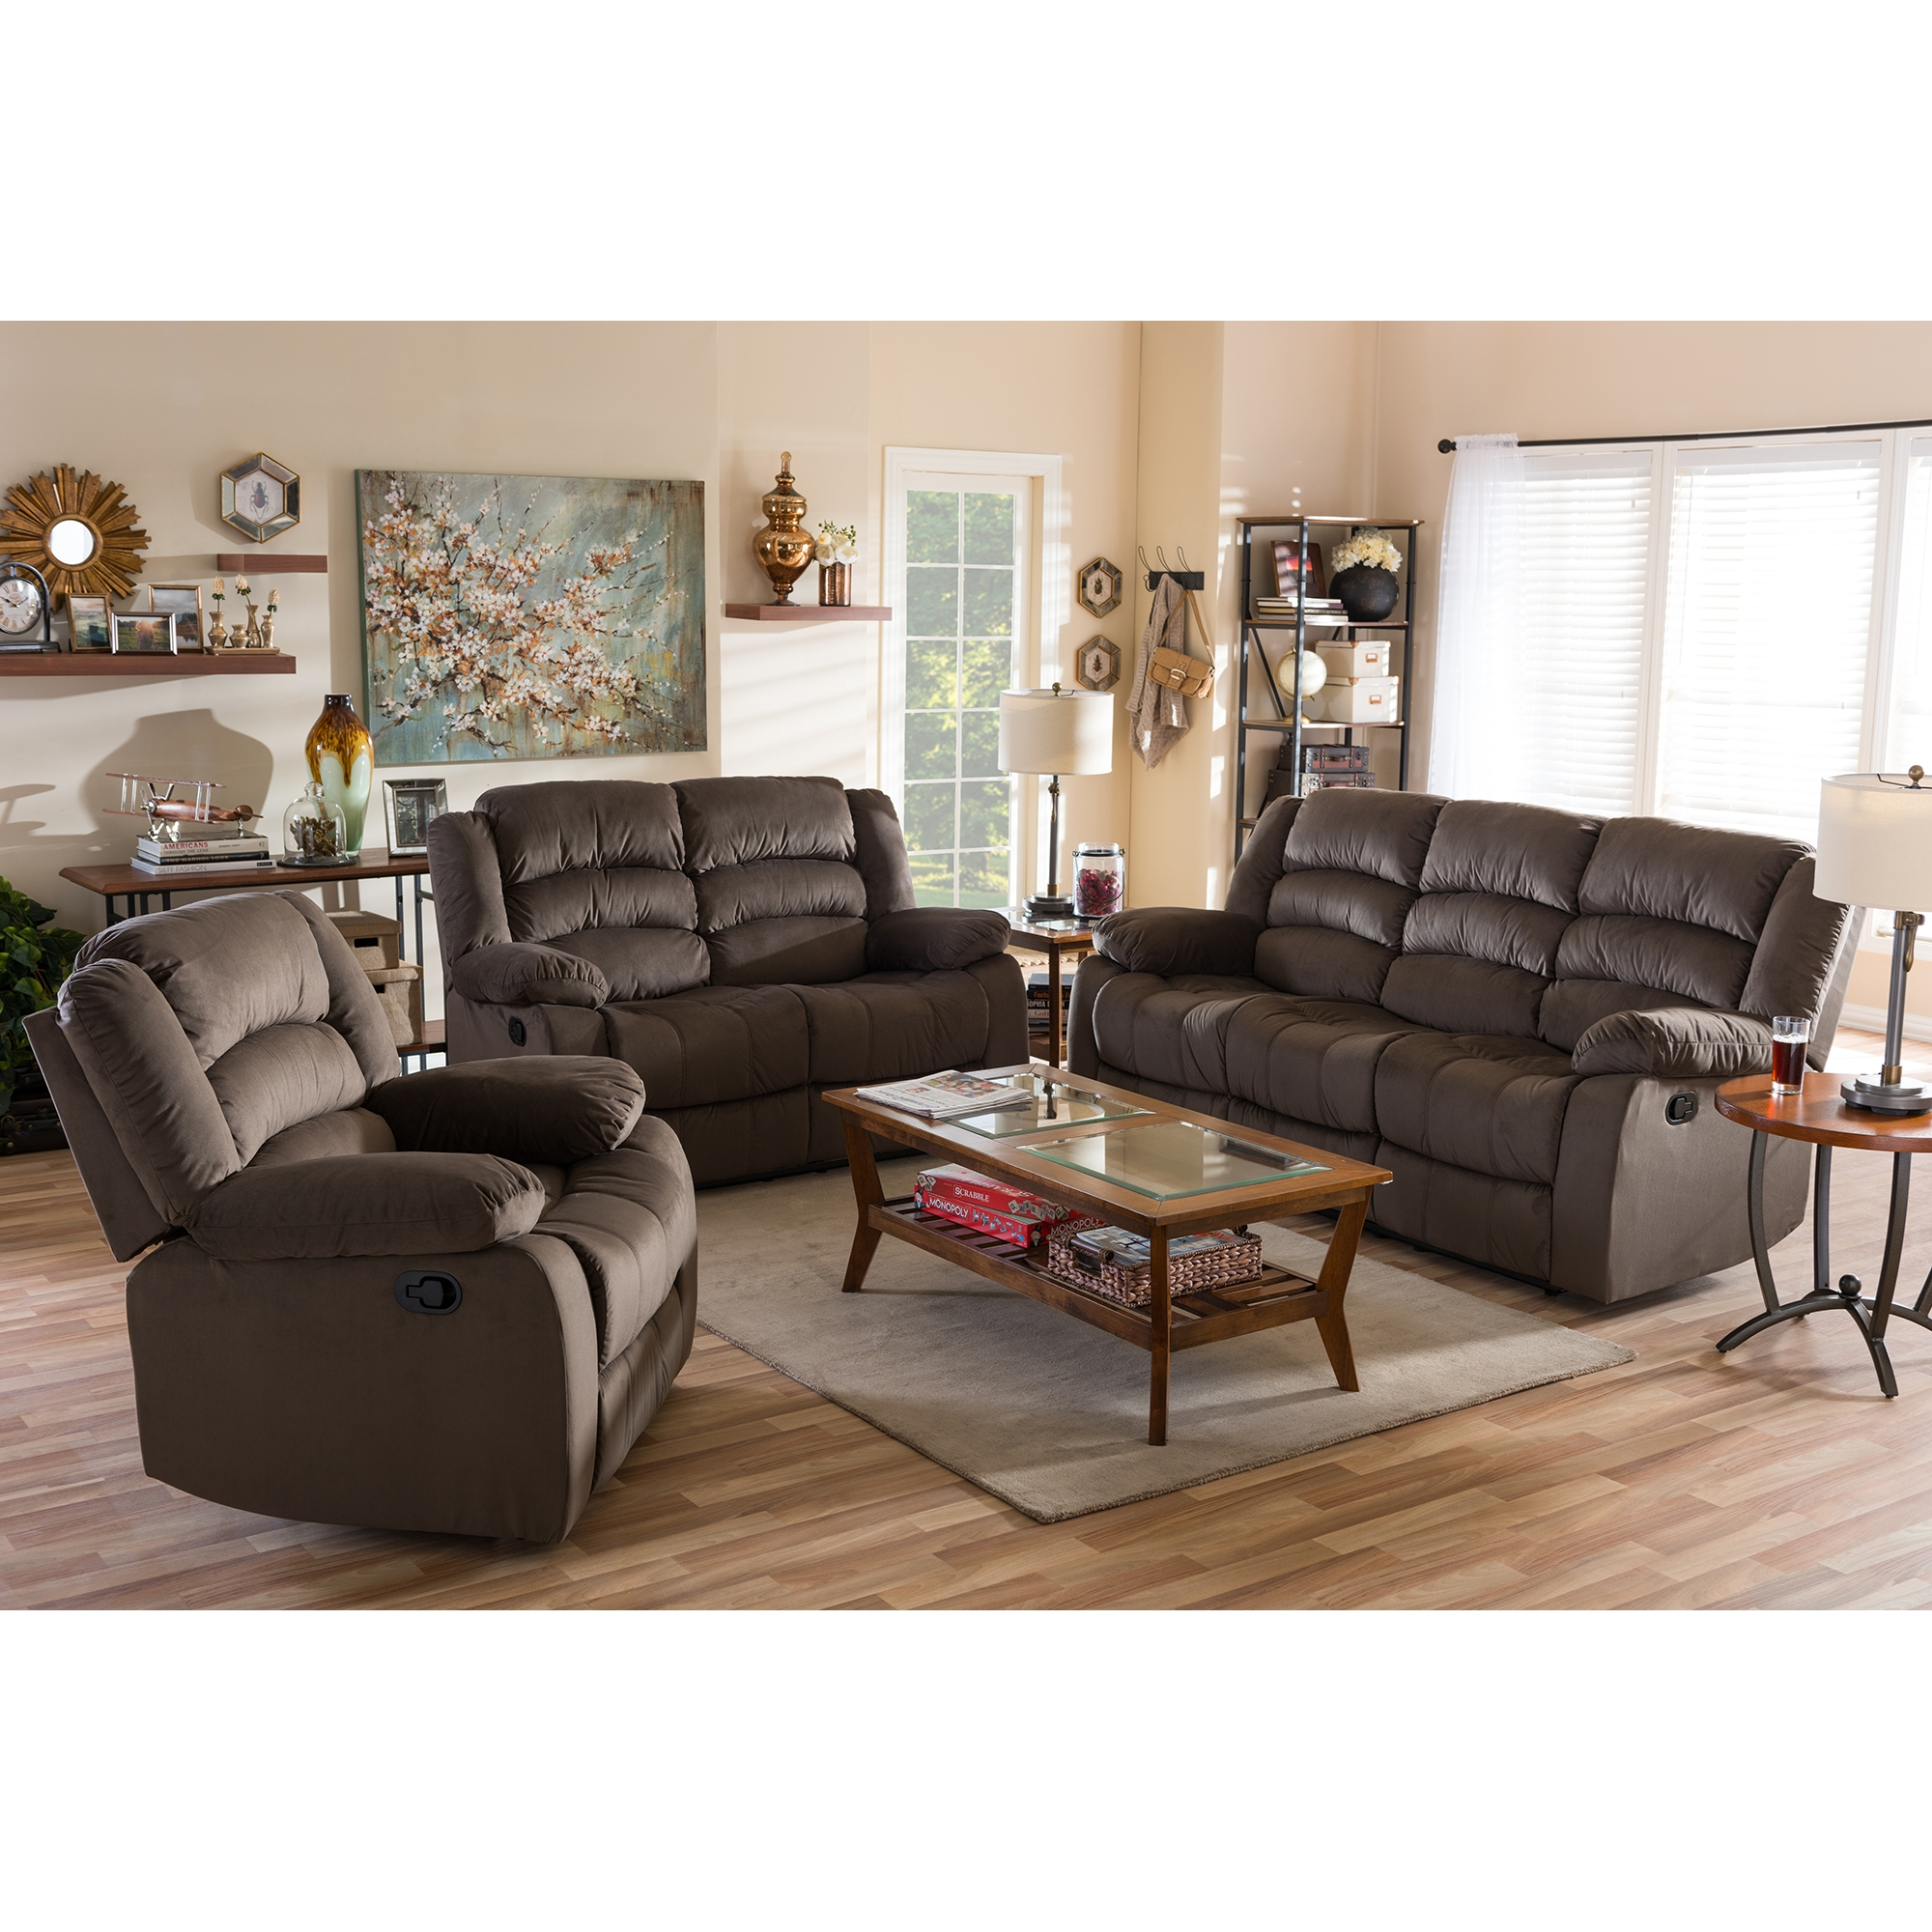 ... Baxton Studio Hollace Modern And Contemporary Taupe Microsuede Sofa  Loveseat And Chair Set With 5 Recliners ...